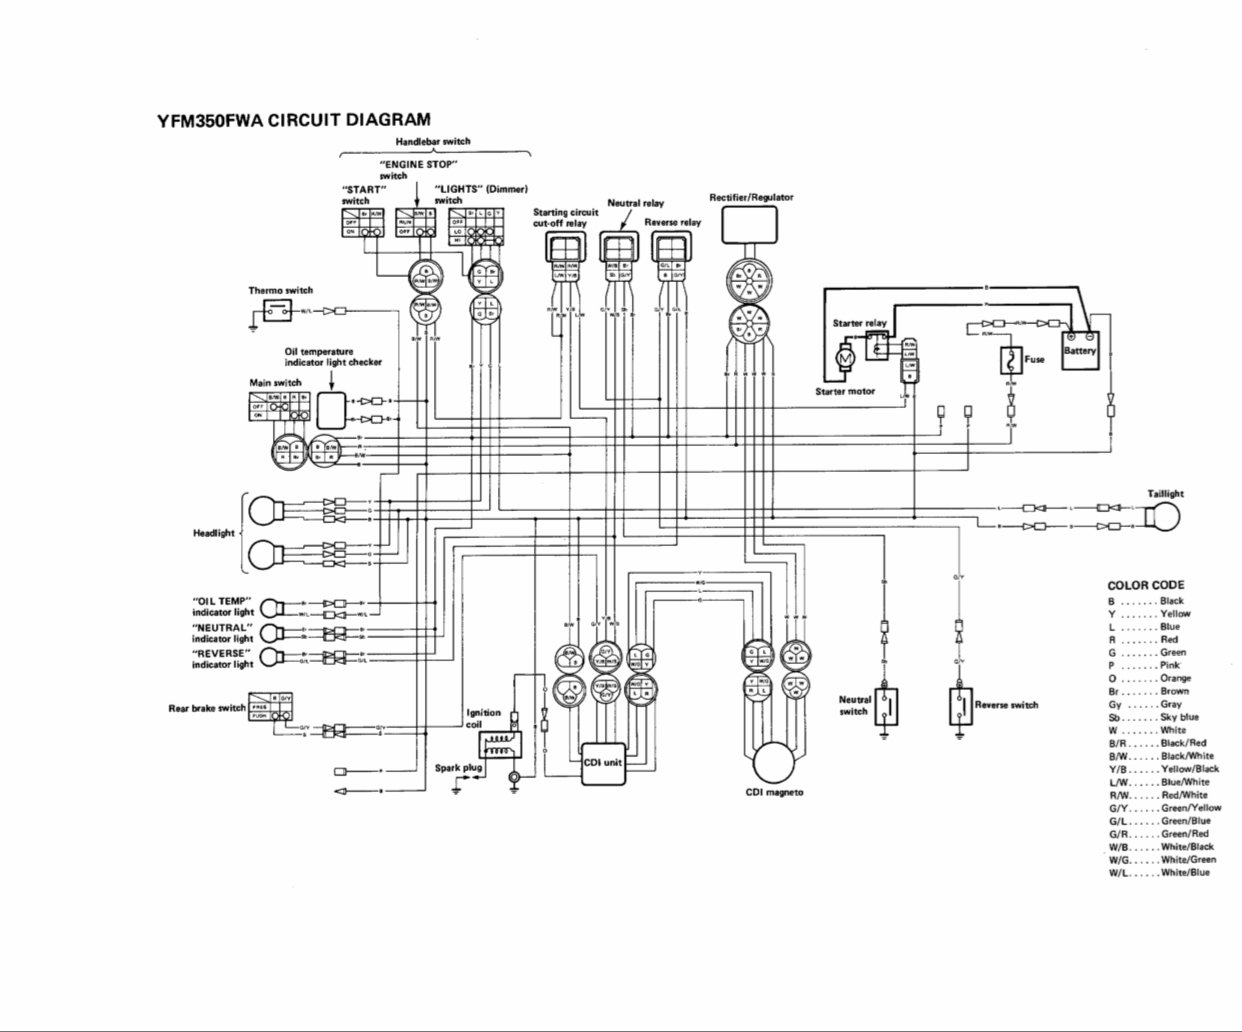 yamaha atv wiring diagram for starters wiring diagram for yamaha 350 big bear wiring diagram schematics  wiring diagram for yamaha 350 big bear